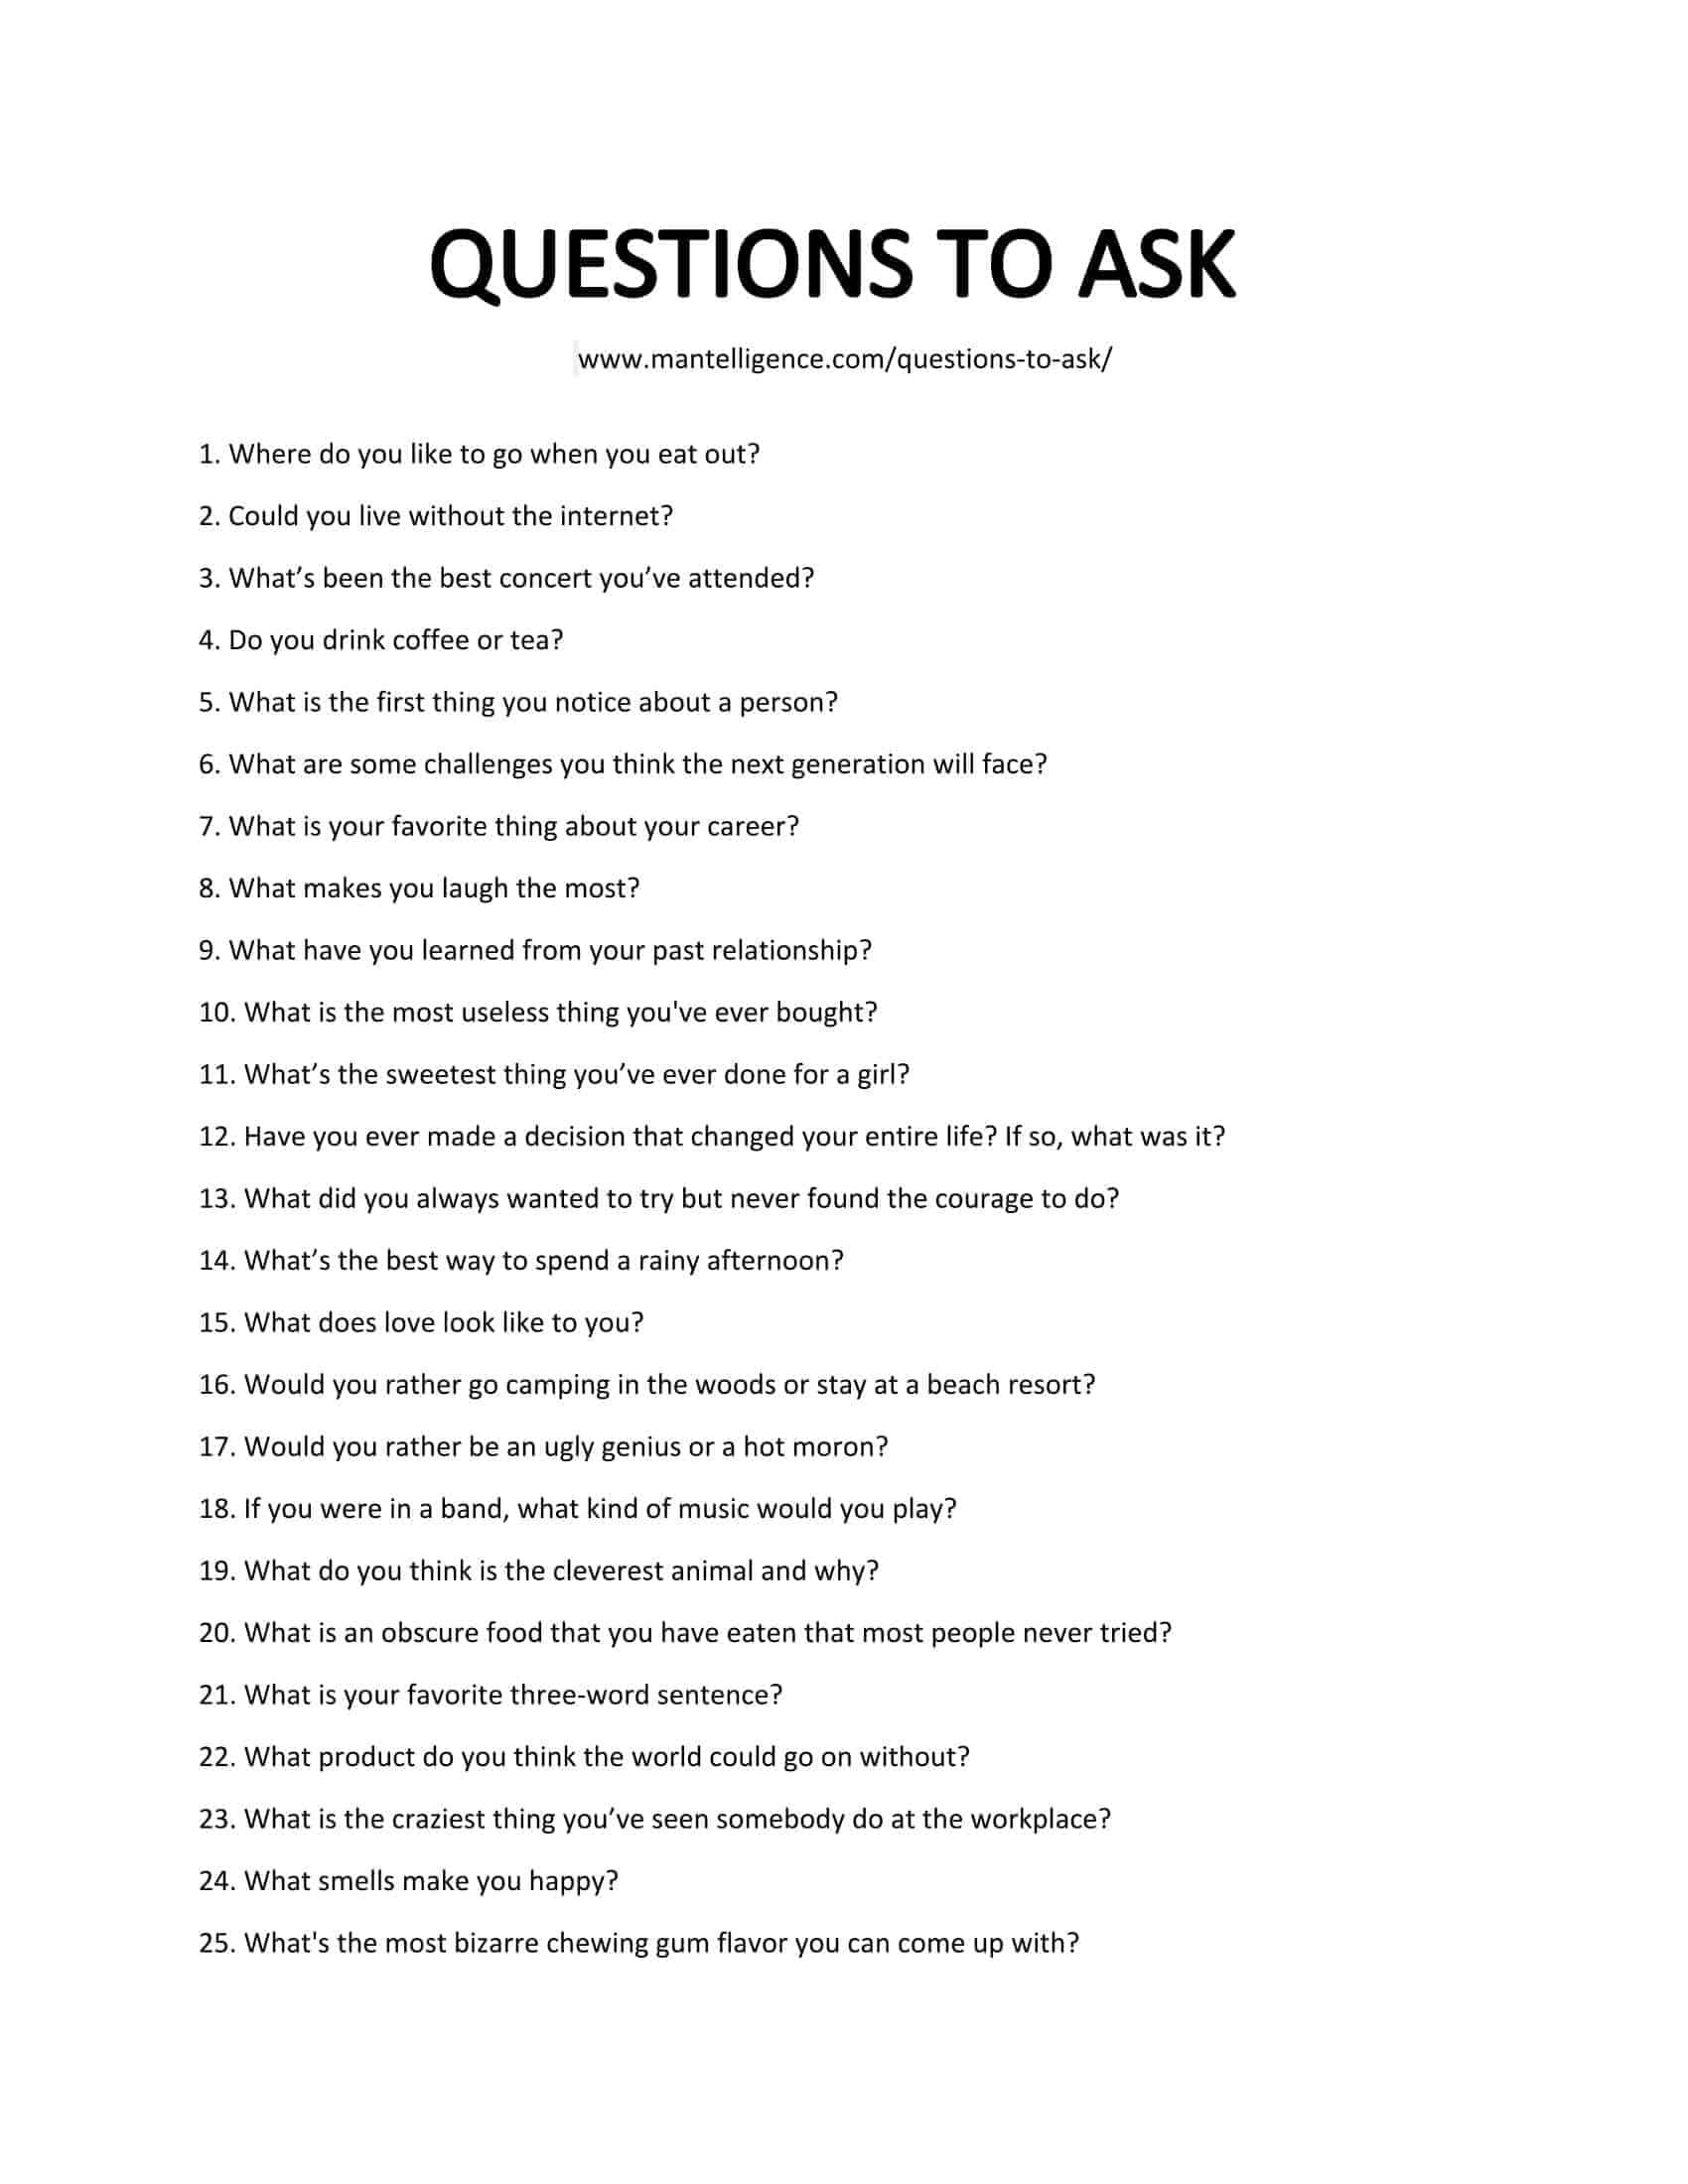 250 Good Questions Ask One To Easily Start A Conversation Fun Questions To Ask This Or That Questions Topics To Talk About